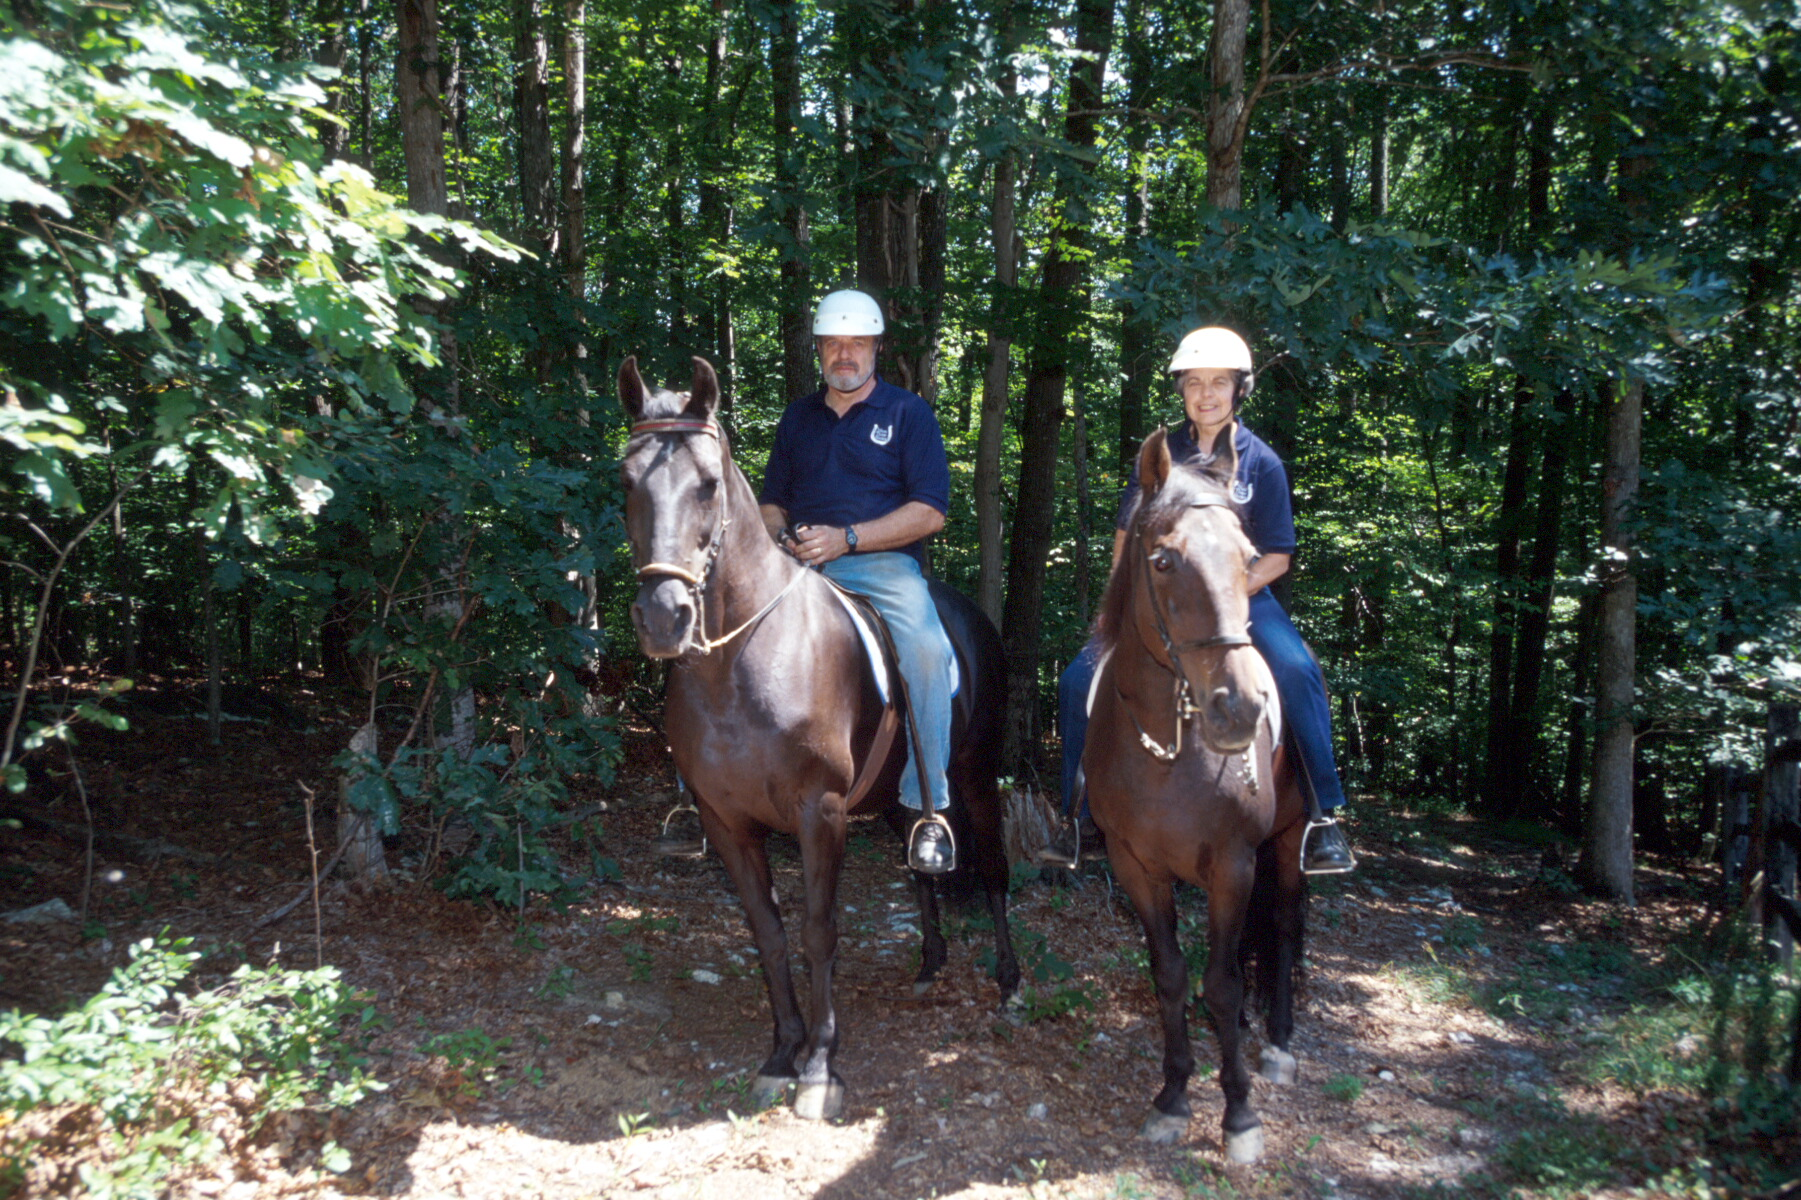 People riding horses on trail